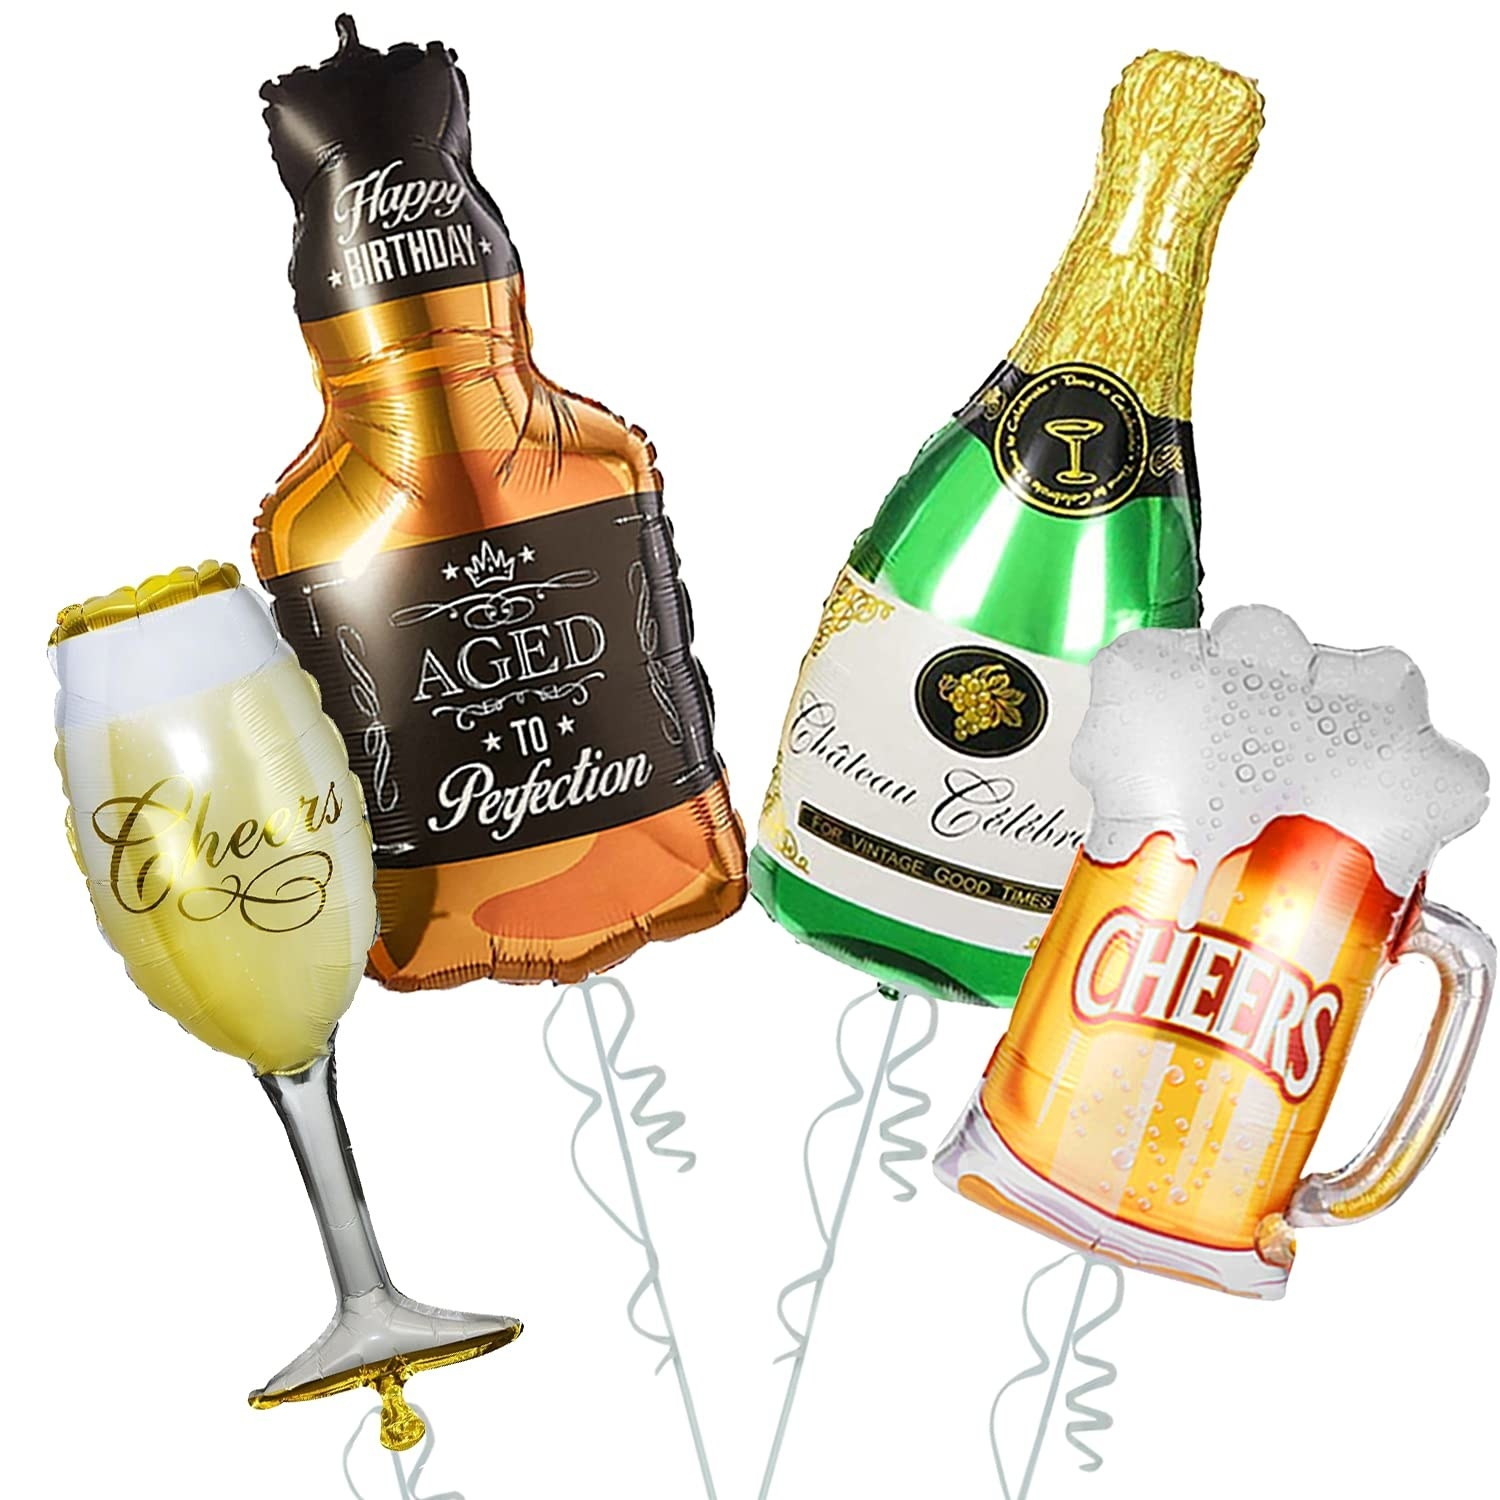 4 inflated balloons in the shape of a champagne bottle, wine glass, whiskey bottle and beer mug